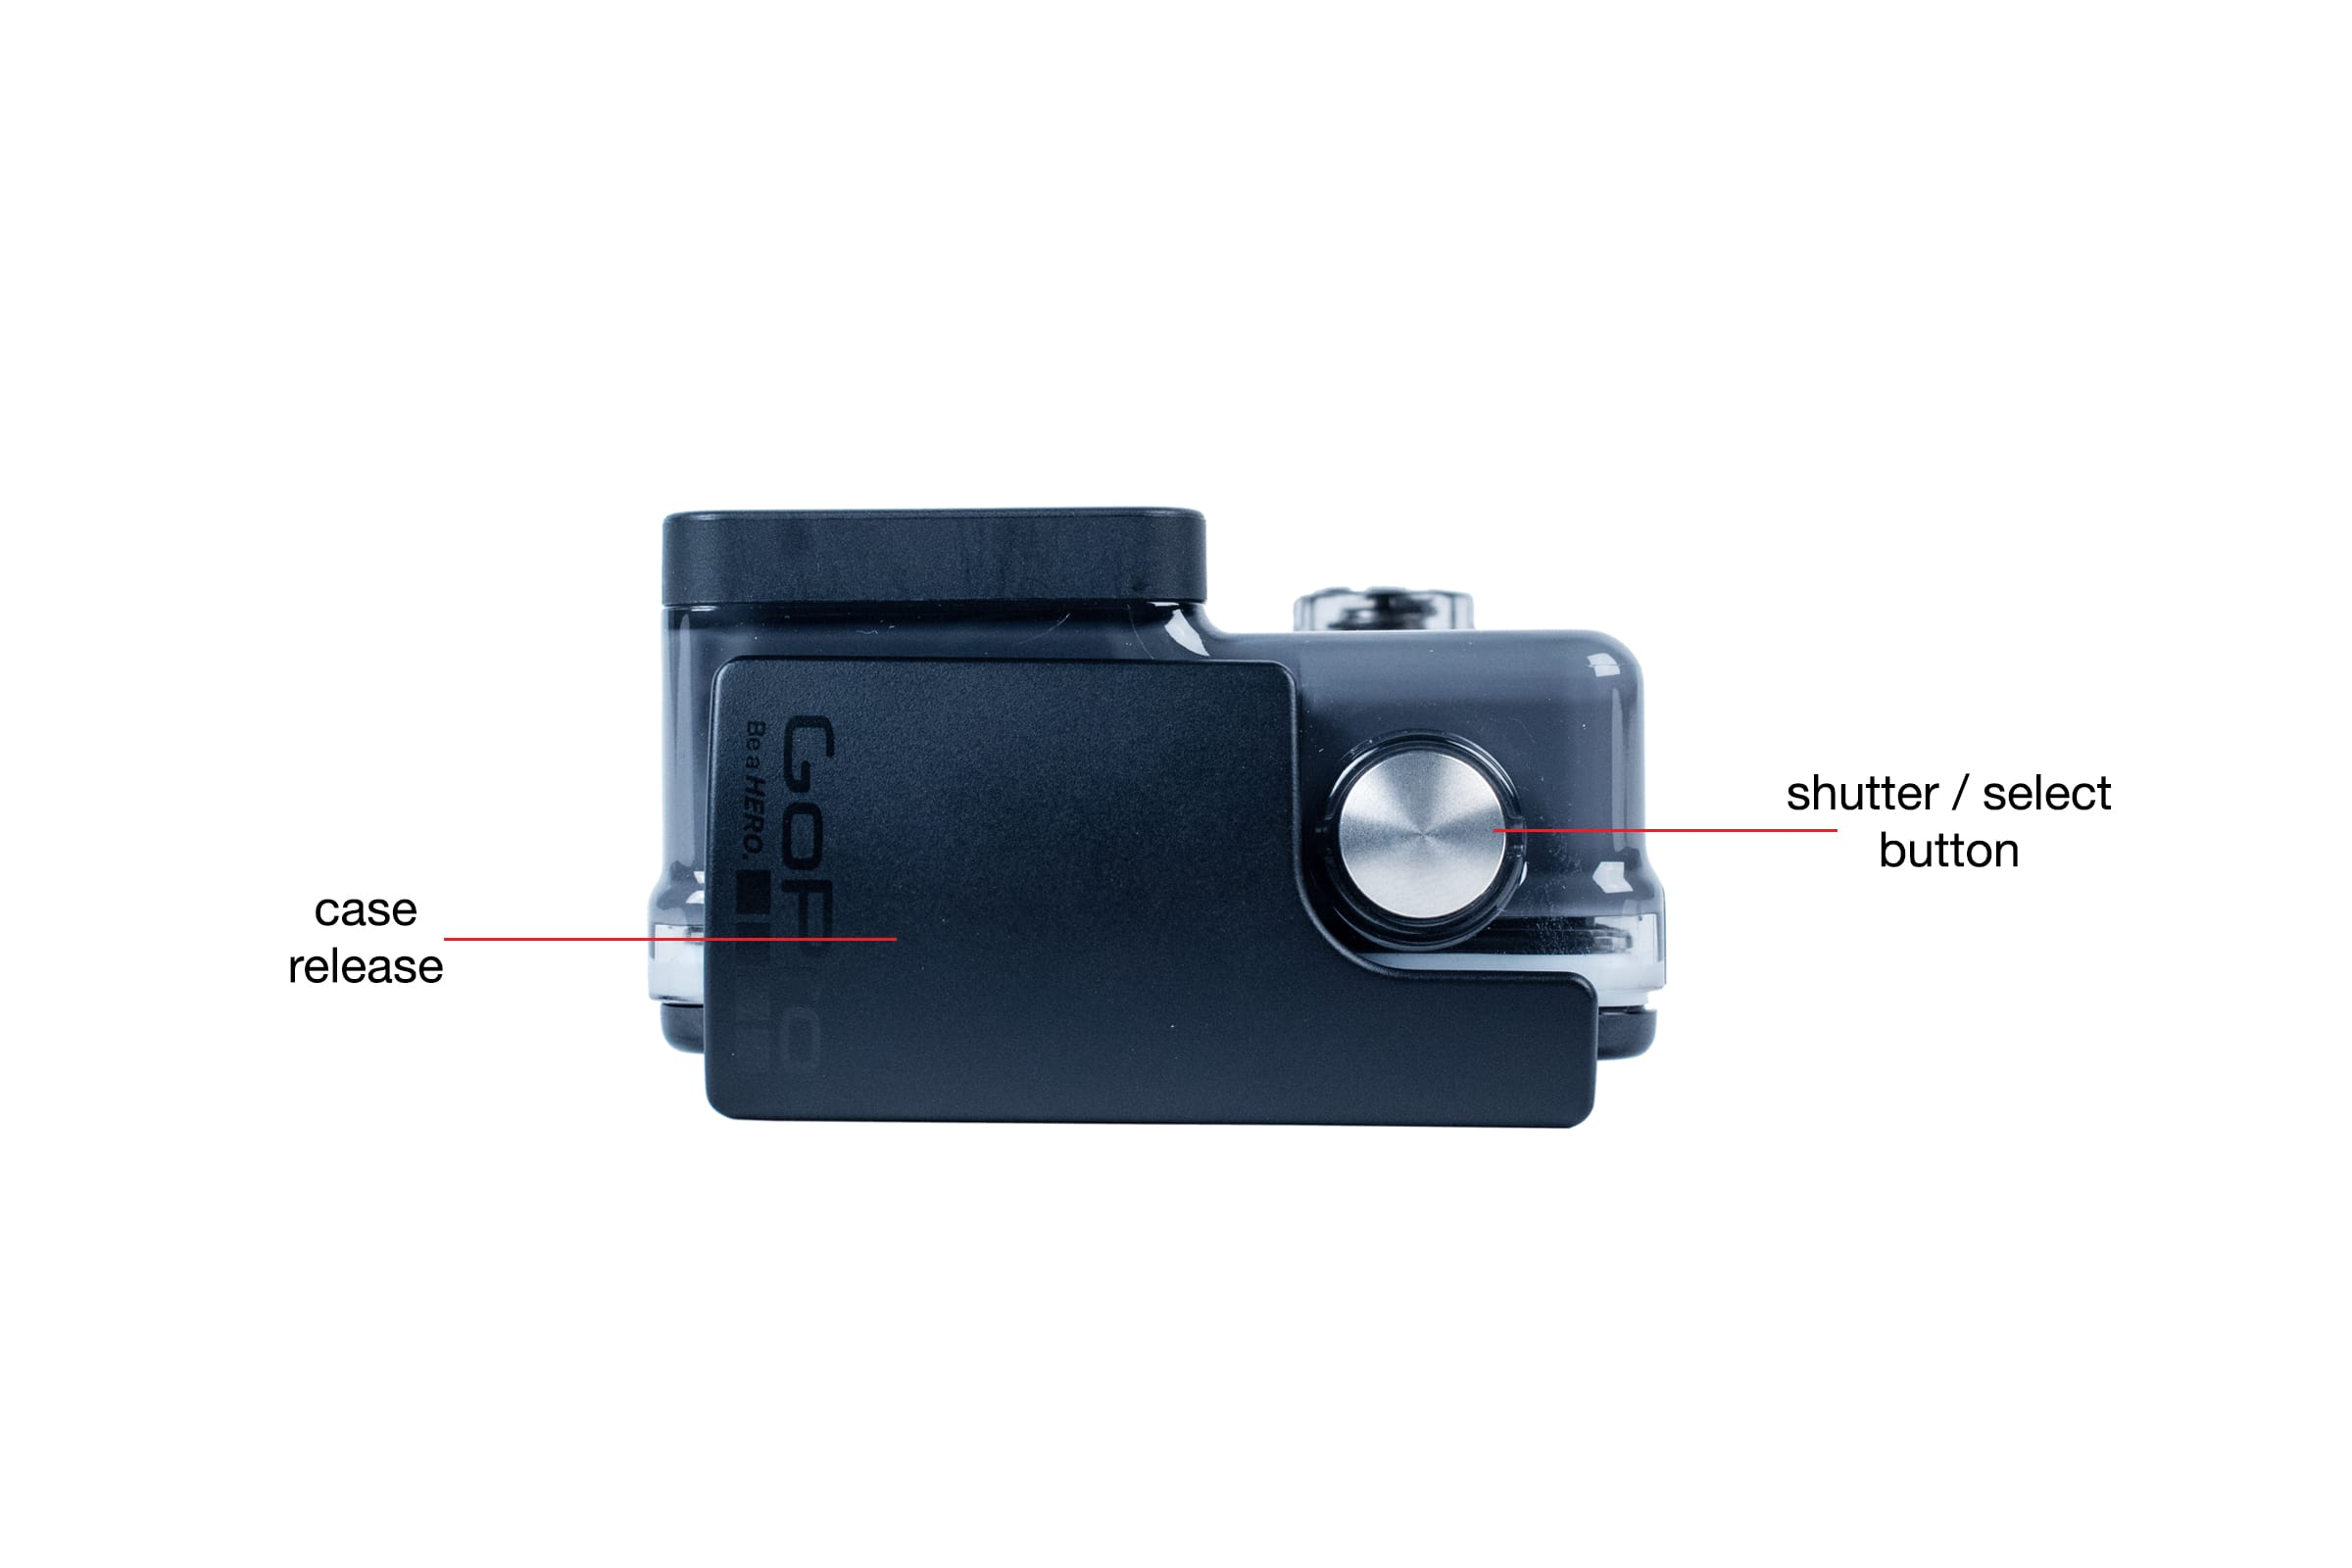 Top view of the GoPro Hero (2014)